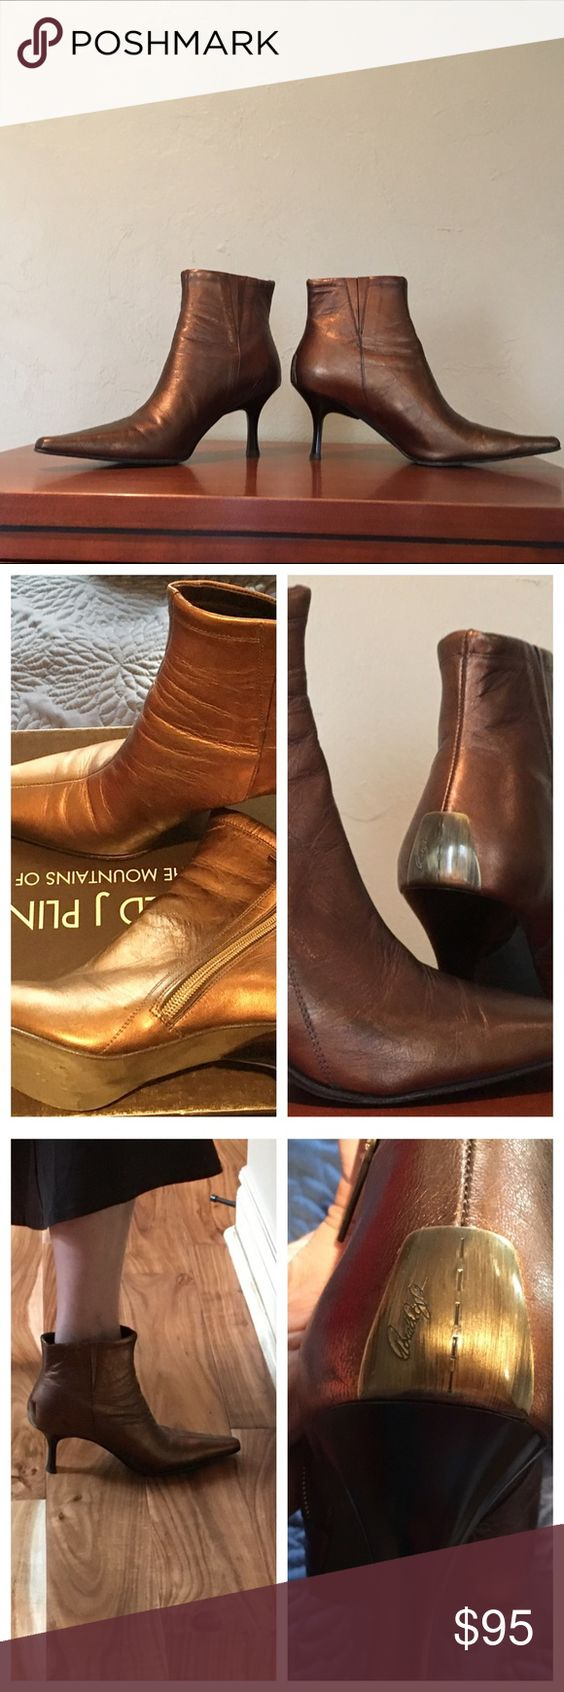 """Donald J Pliner """"Sara"""" metallic gold bronze boots 💥Sale💥Gorgeous leather upper, leather sole, leather insole, beautiful color and craftsmanship, signature embossed above the heel (3""""), side slant zipper, made in Italy. With original box and dust bag, worn once indoor. Ask me if have any questions. Donald J. Pliner Shoes Ankle Boots & Booties"""